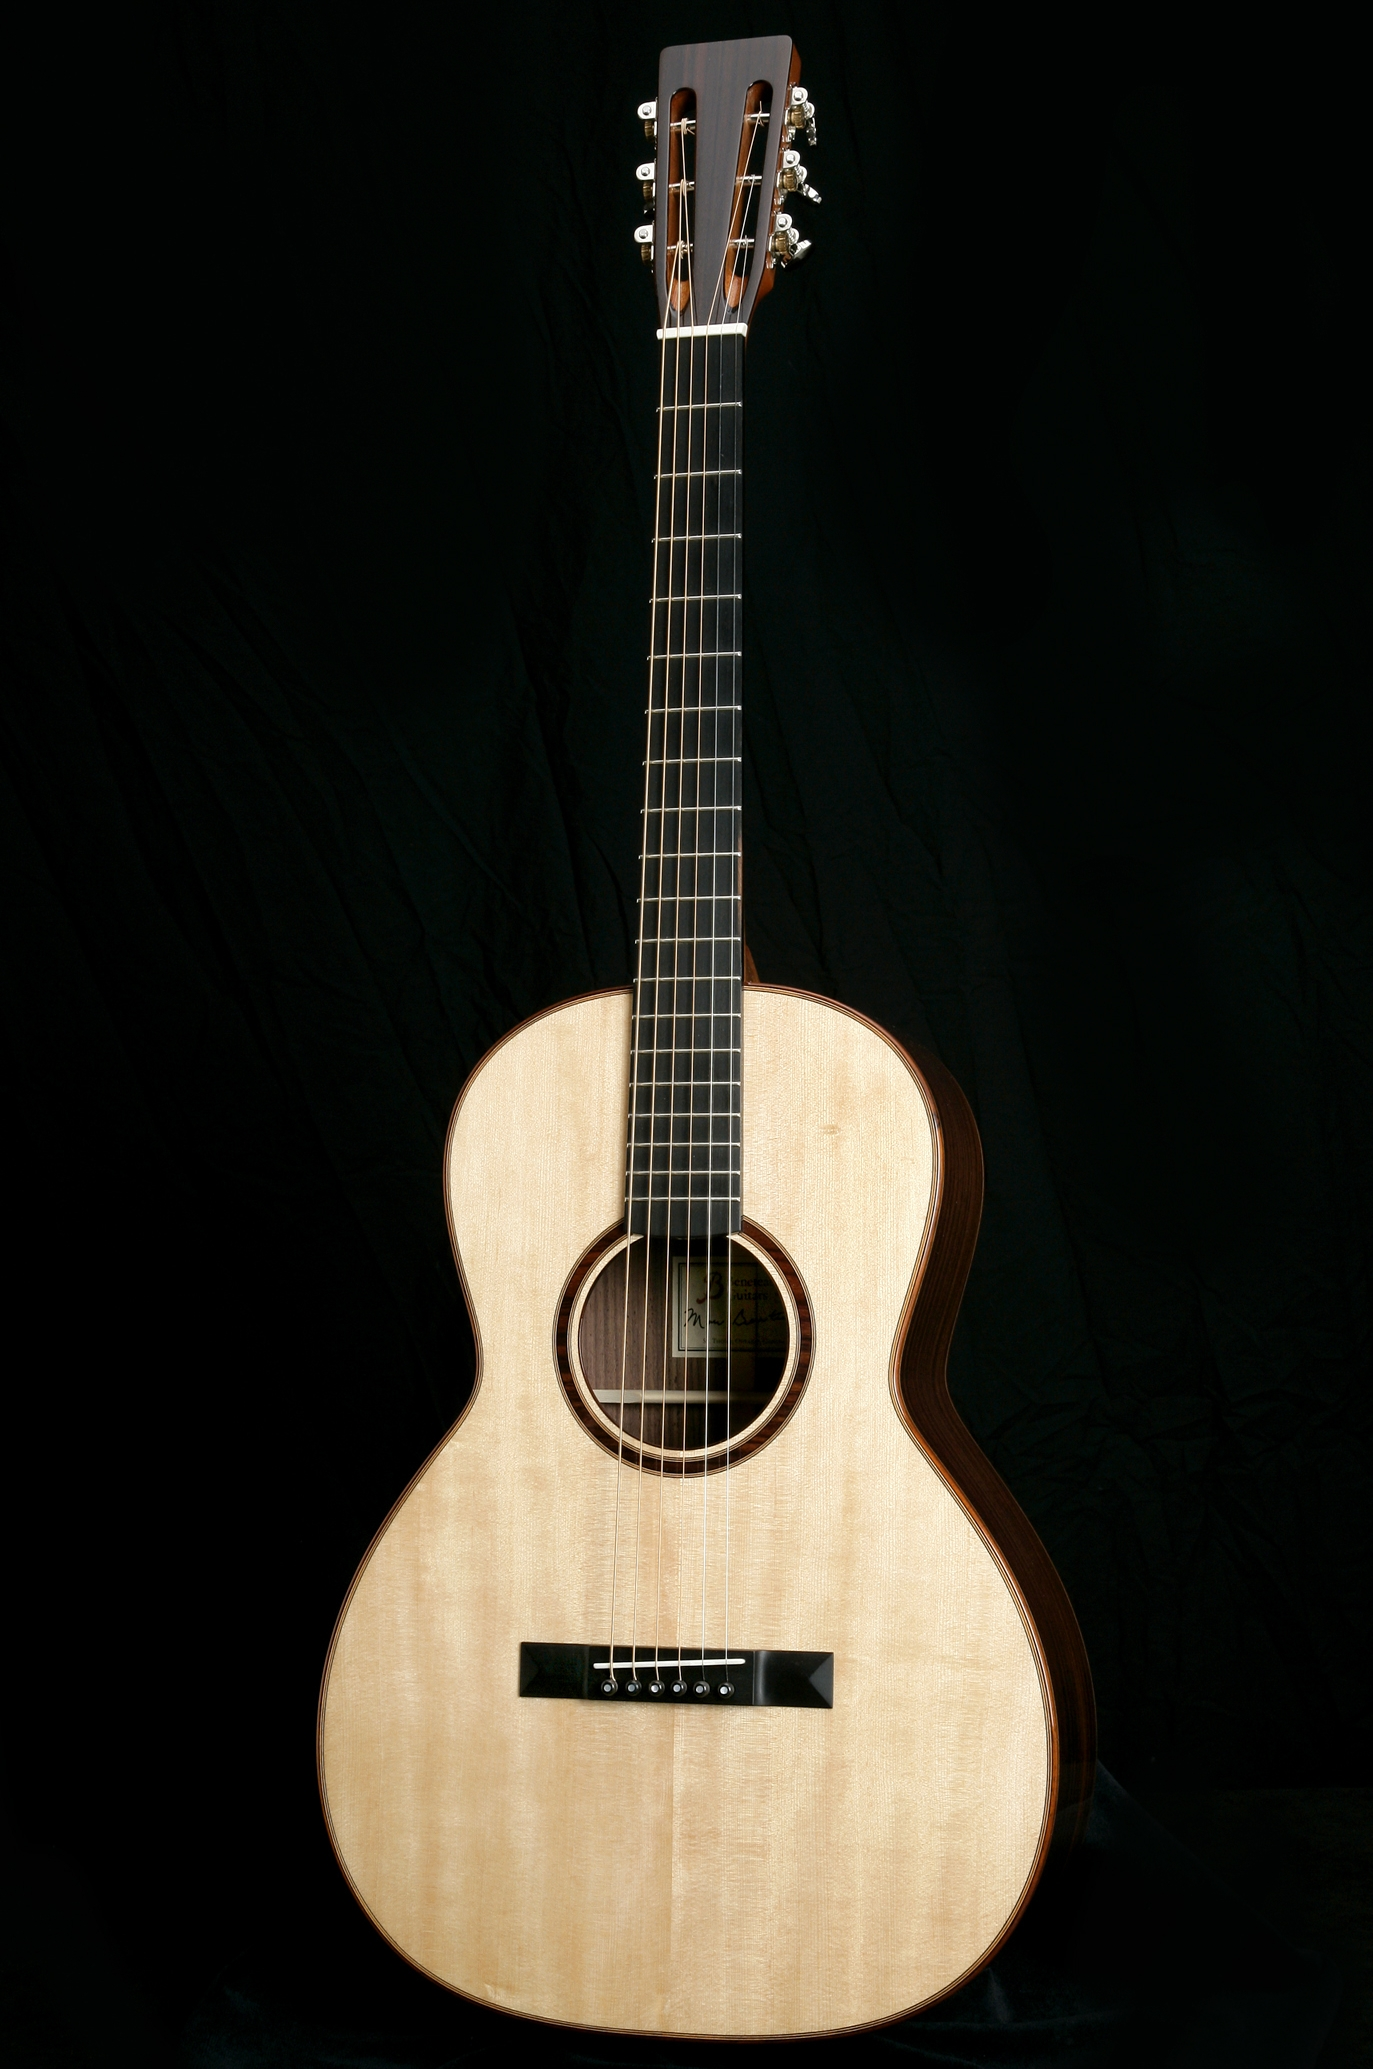 '00' 12 Fret - Dimensionally, the 00 is approximately the same dimensions as a classical guitar. The compact size makes it a very comfortable instrument to play while still providing surprising tone and volume.DimensionsUpper Bout: 9 7/8